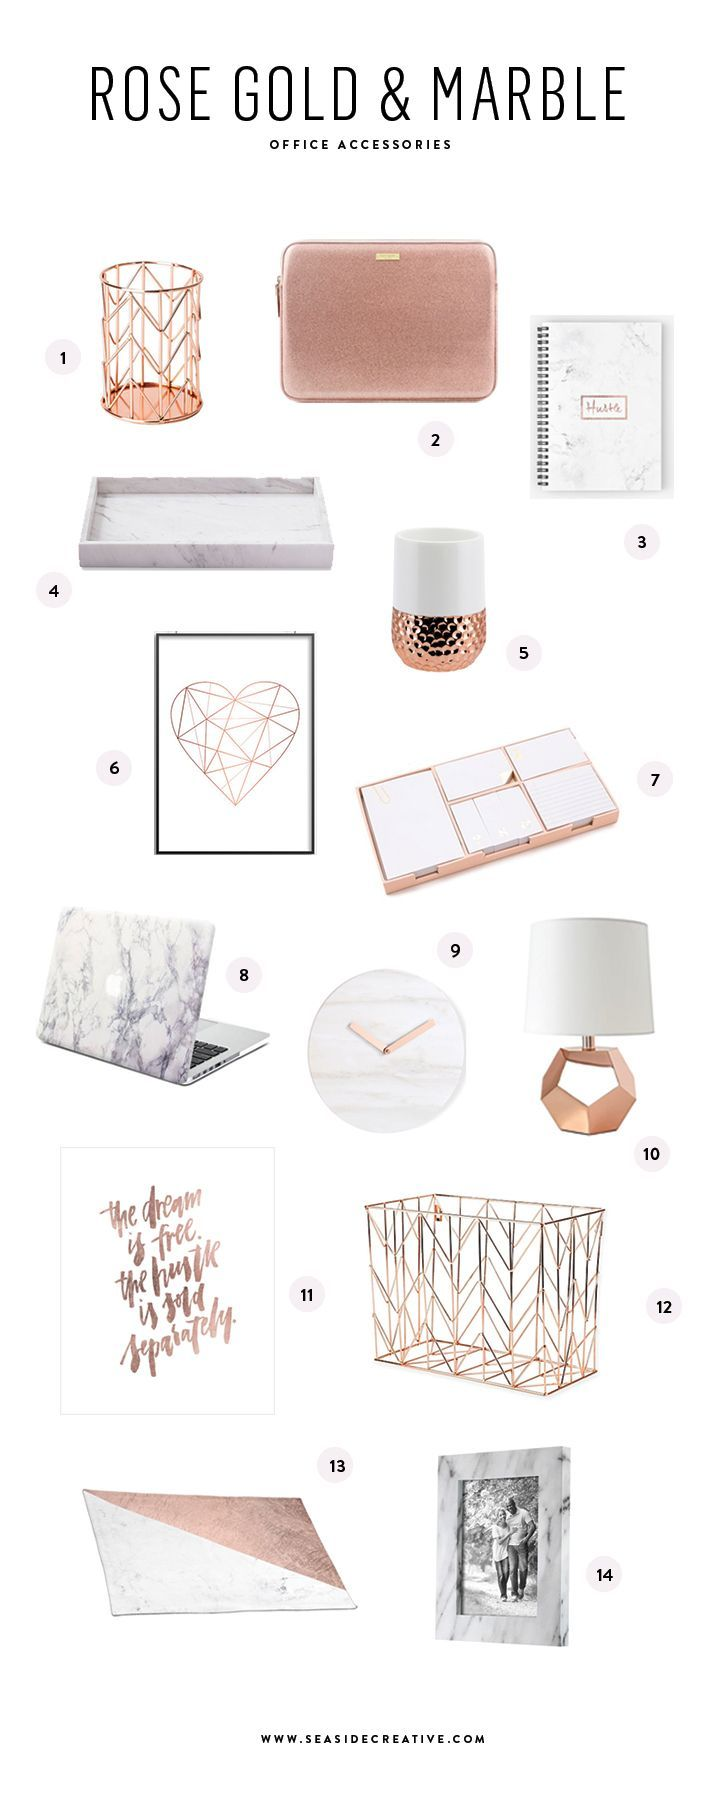 Seaside Creative Blog Beautiful Rose Gold & Marble Office Accessories - Seaside Creative Blog